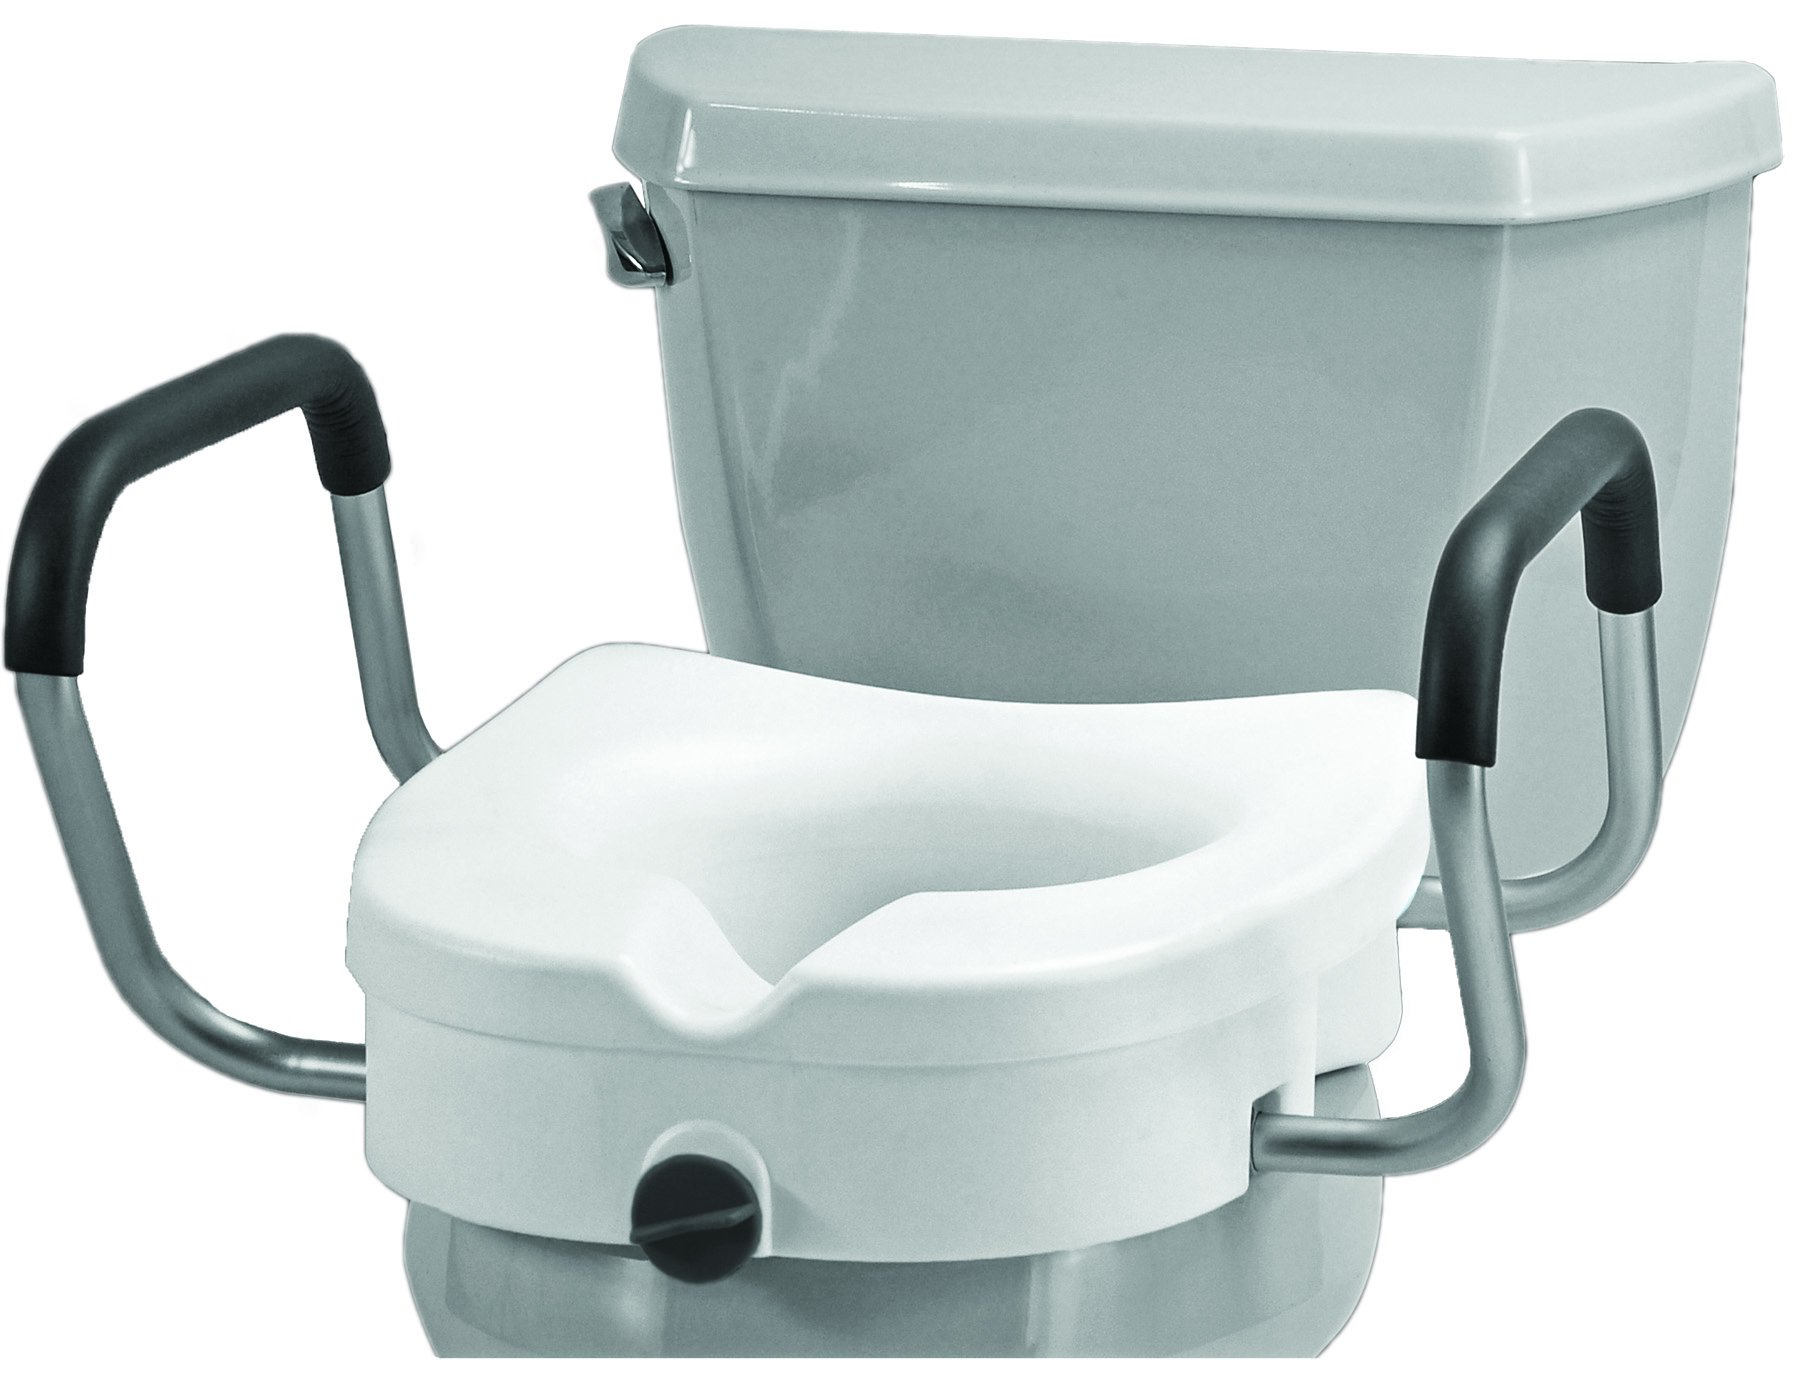 NOVA Medical Products Raised Toilet Seat with Detachable Arms, White, 5.5 Pound by NOVA Medical Products